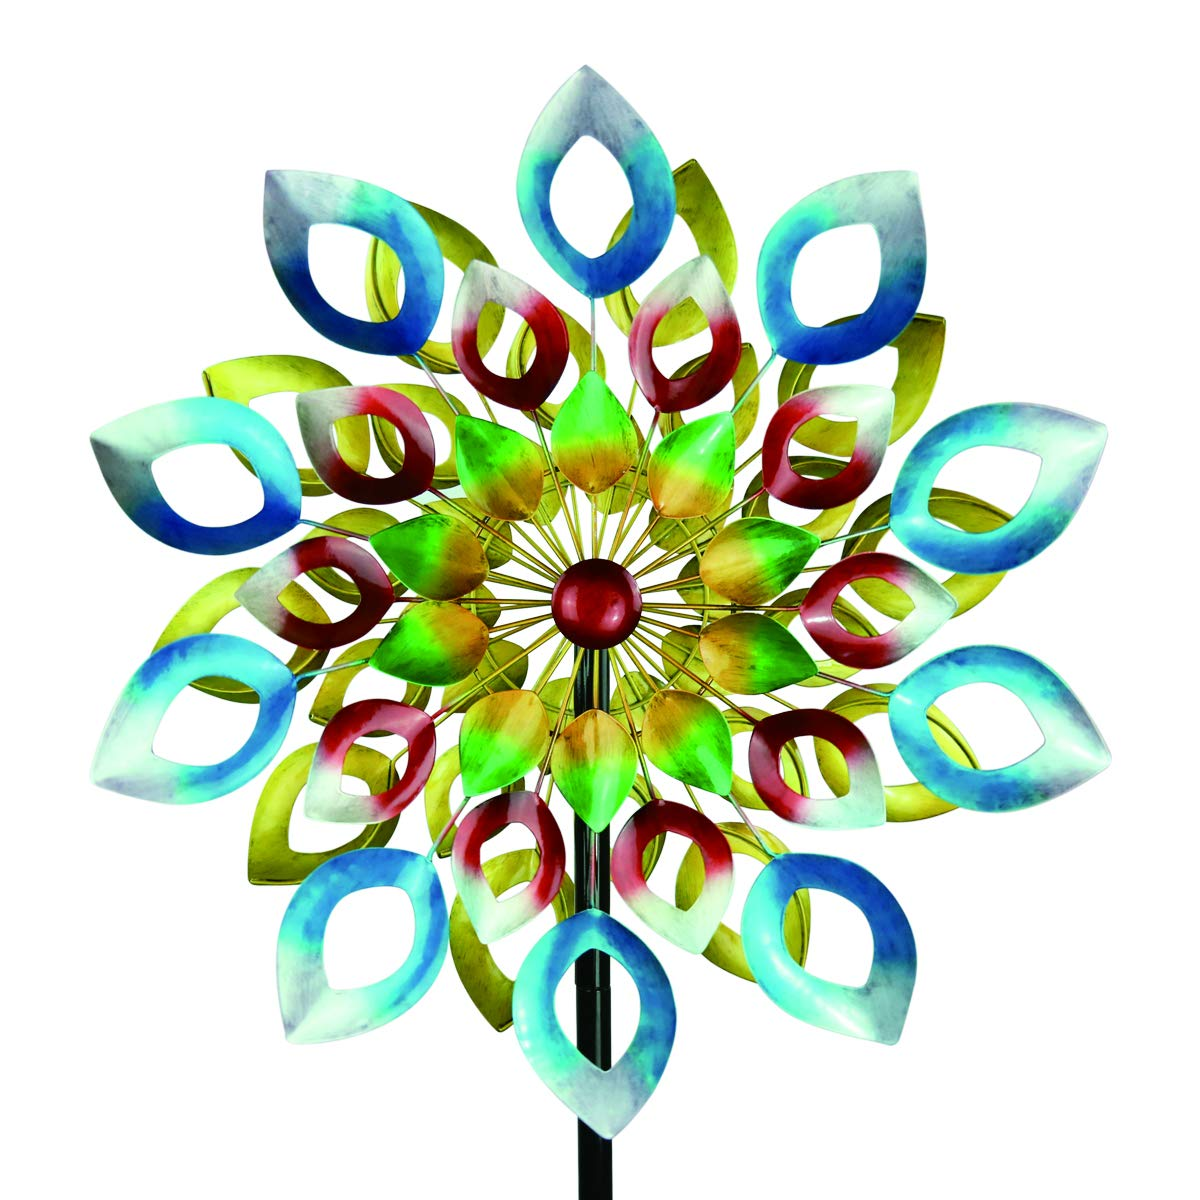 3D Kinetic Wind Spinners with Stable Stake Metal Garden Spinner with Reflective Painting Unique Lawn Ornament Wind Mill for Outdoor Yard Lawn Garden Decorations (Multi-Color)